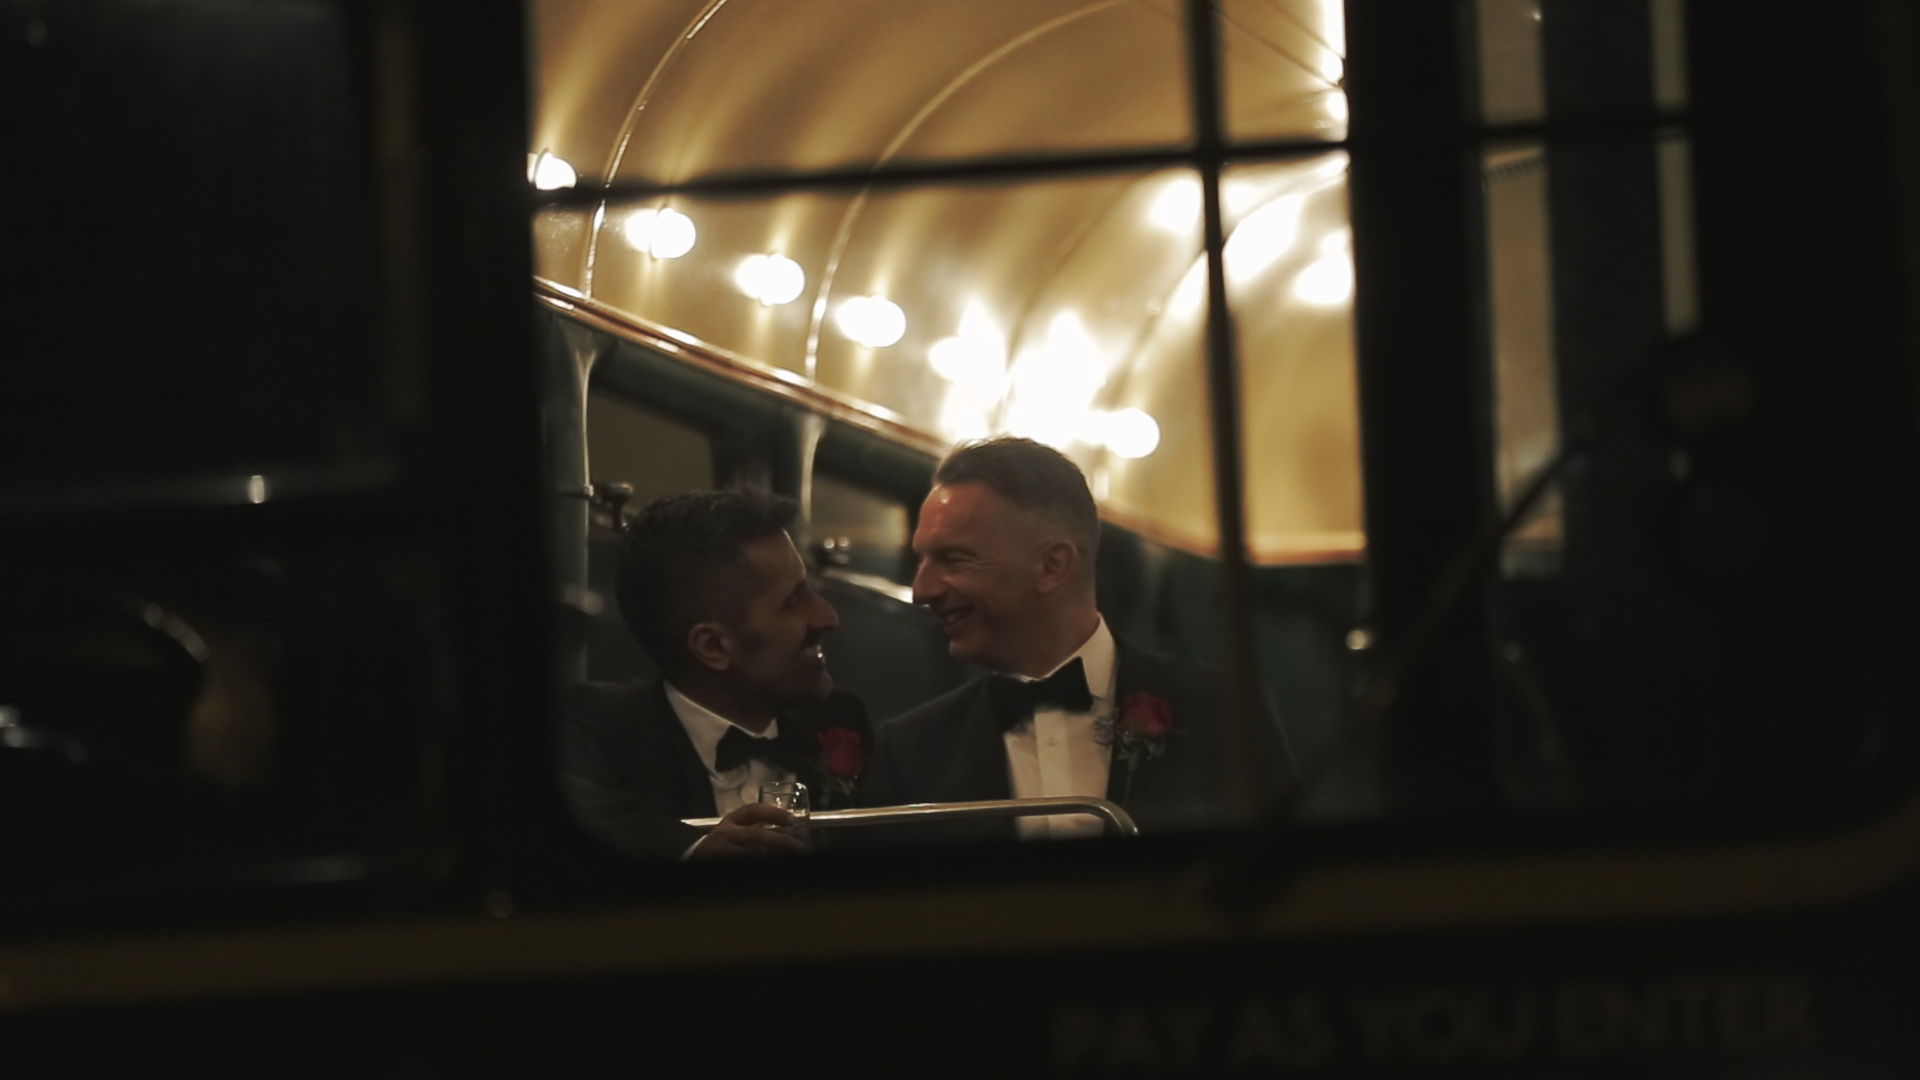 Andy + Sunil ||Burford Bridge Hotel